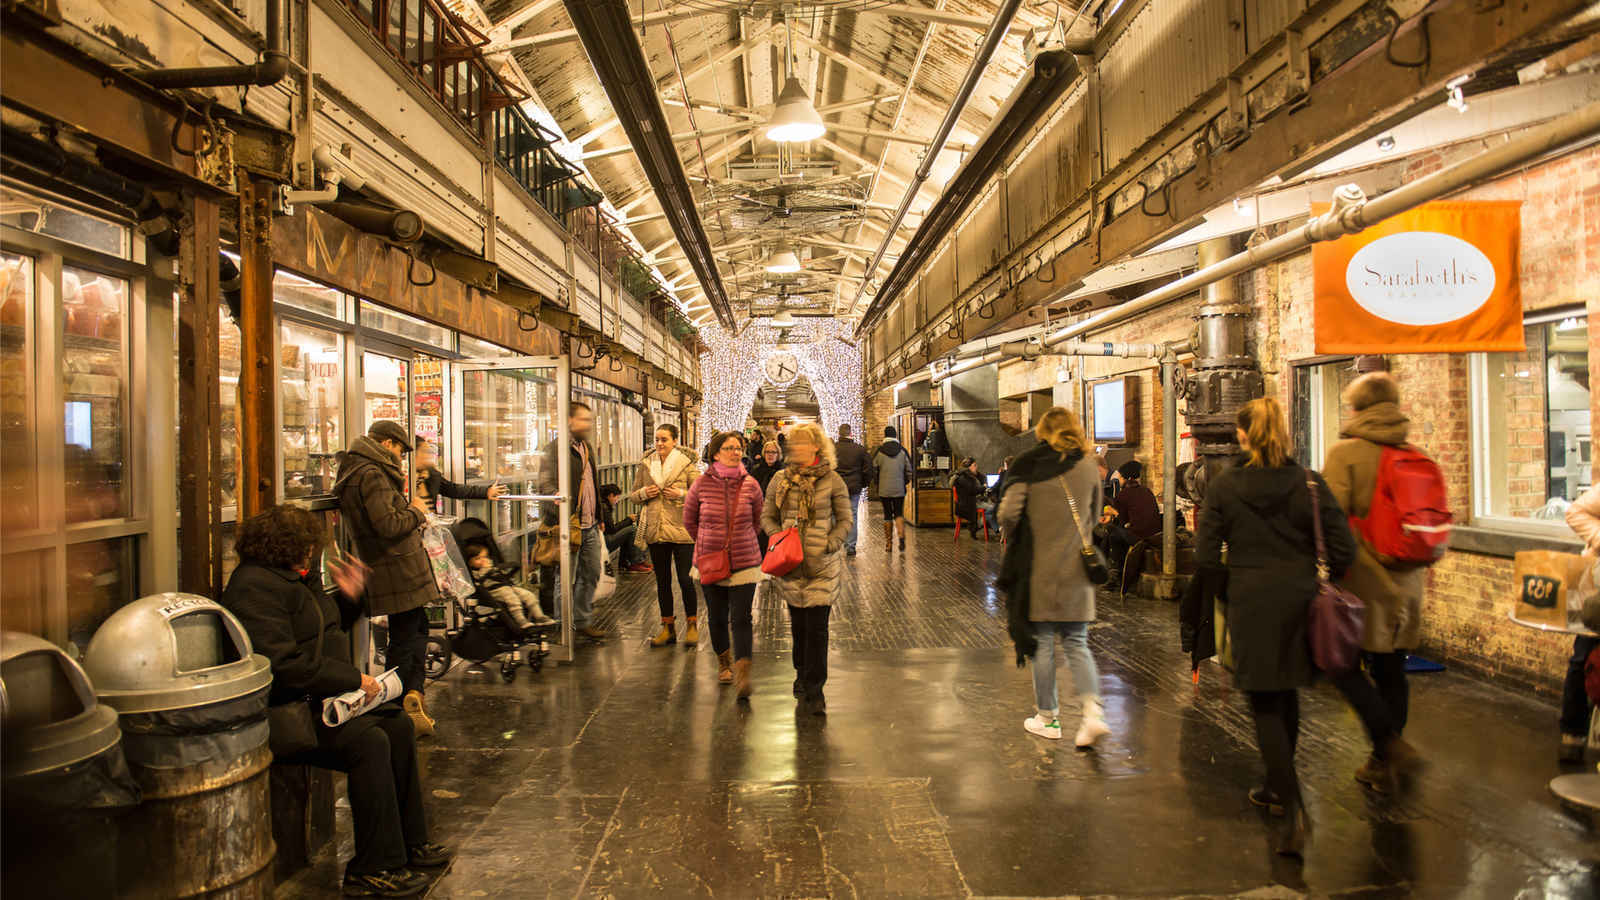 People browsing shops and restaurant storefronts inside Chelsea Market